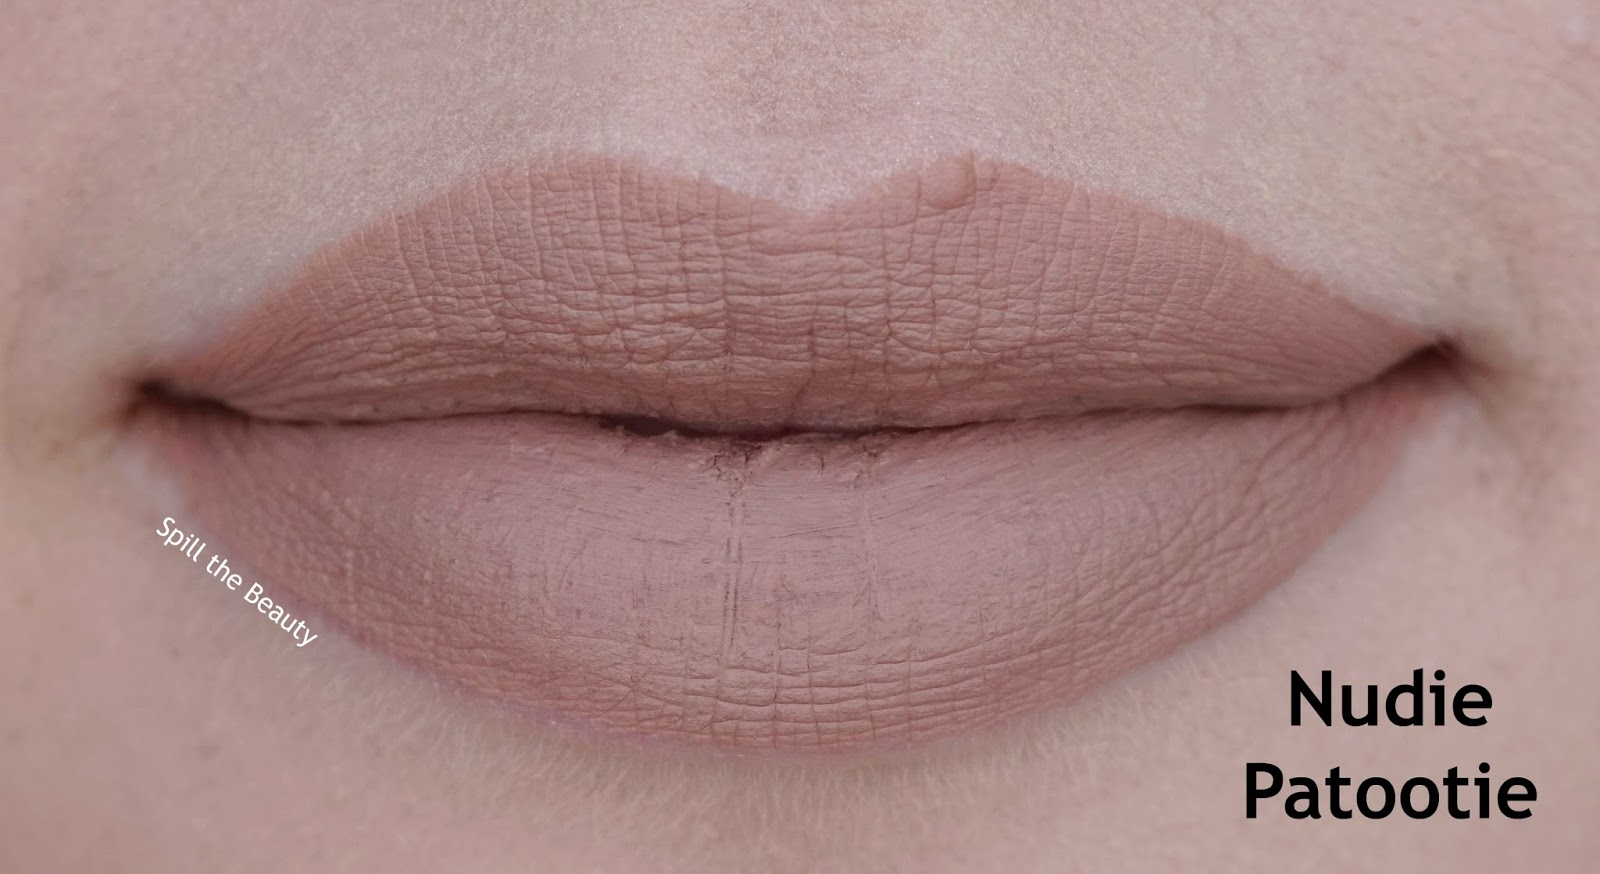 wet n wild liquid catsuit matte lipstick review swatches look nudie patootie 920b lips